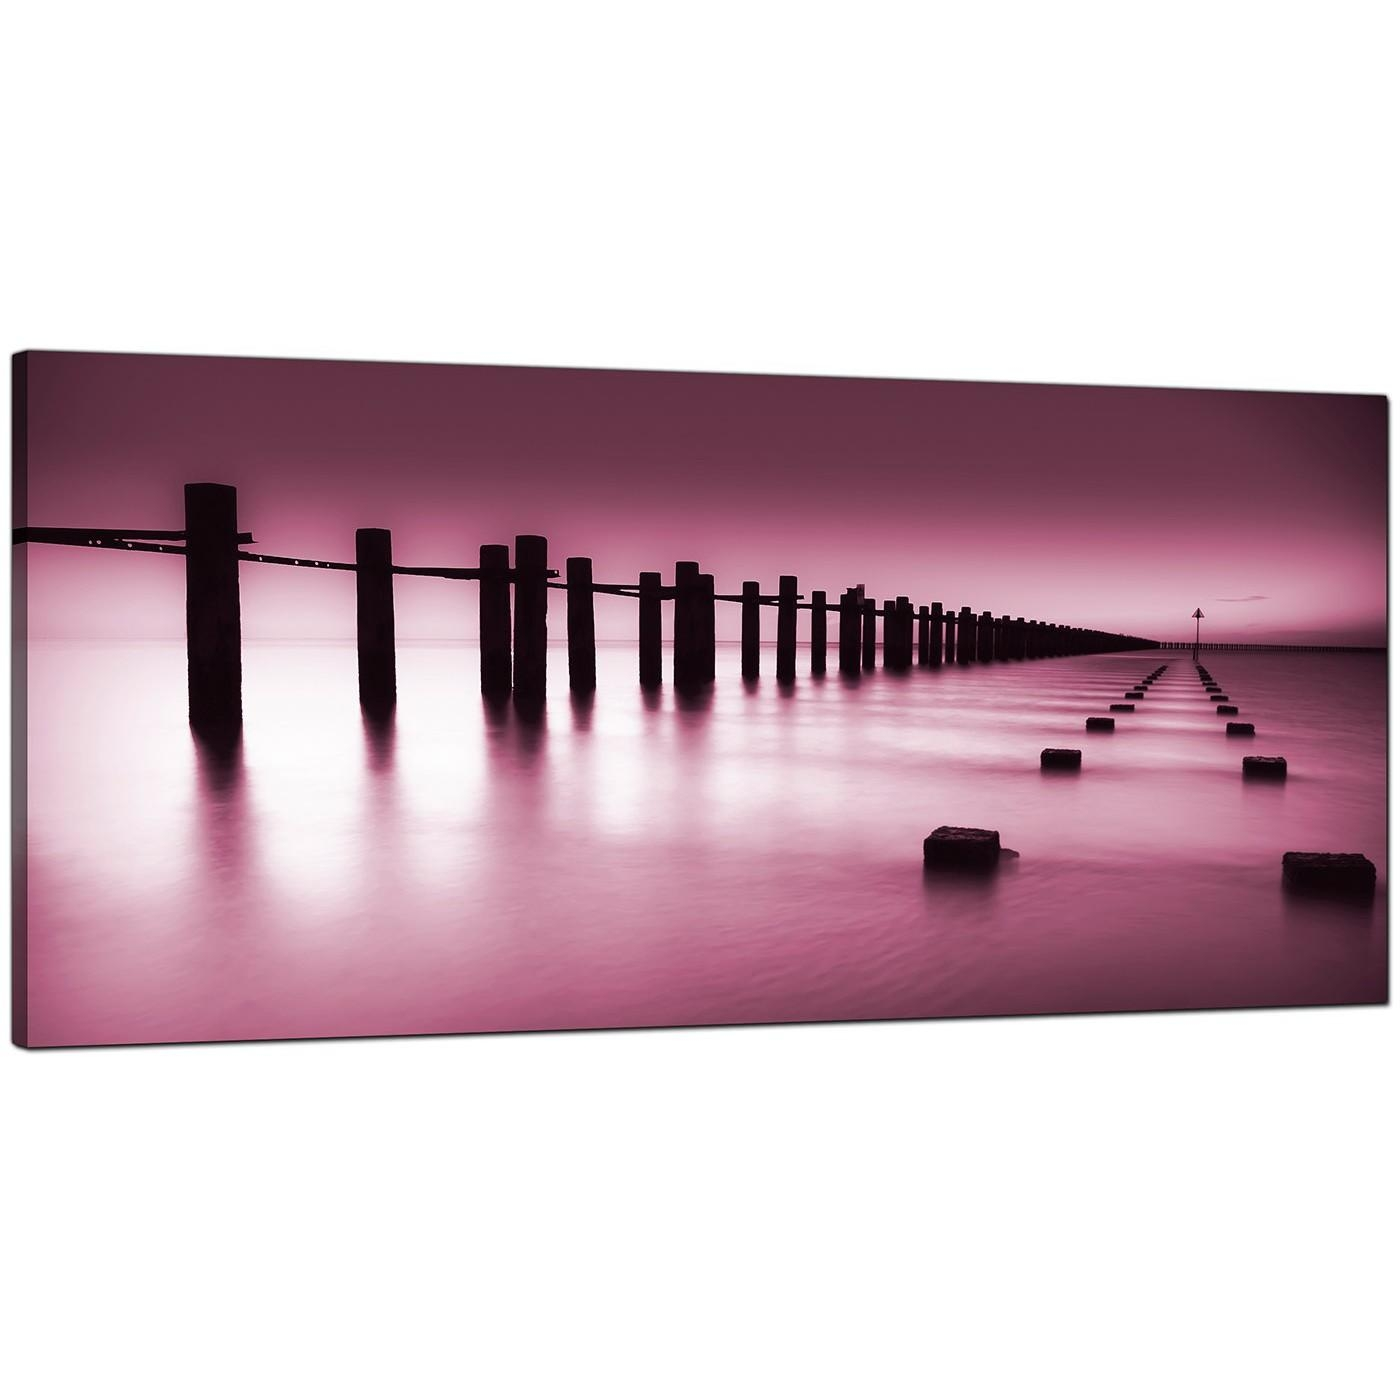 Modern Plum Canvas Wall Art Of The Sea Within Plum Coloured Wall Art (Image 15 of 20)